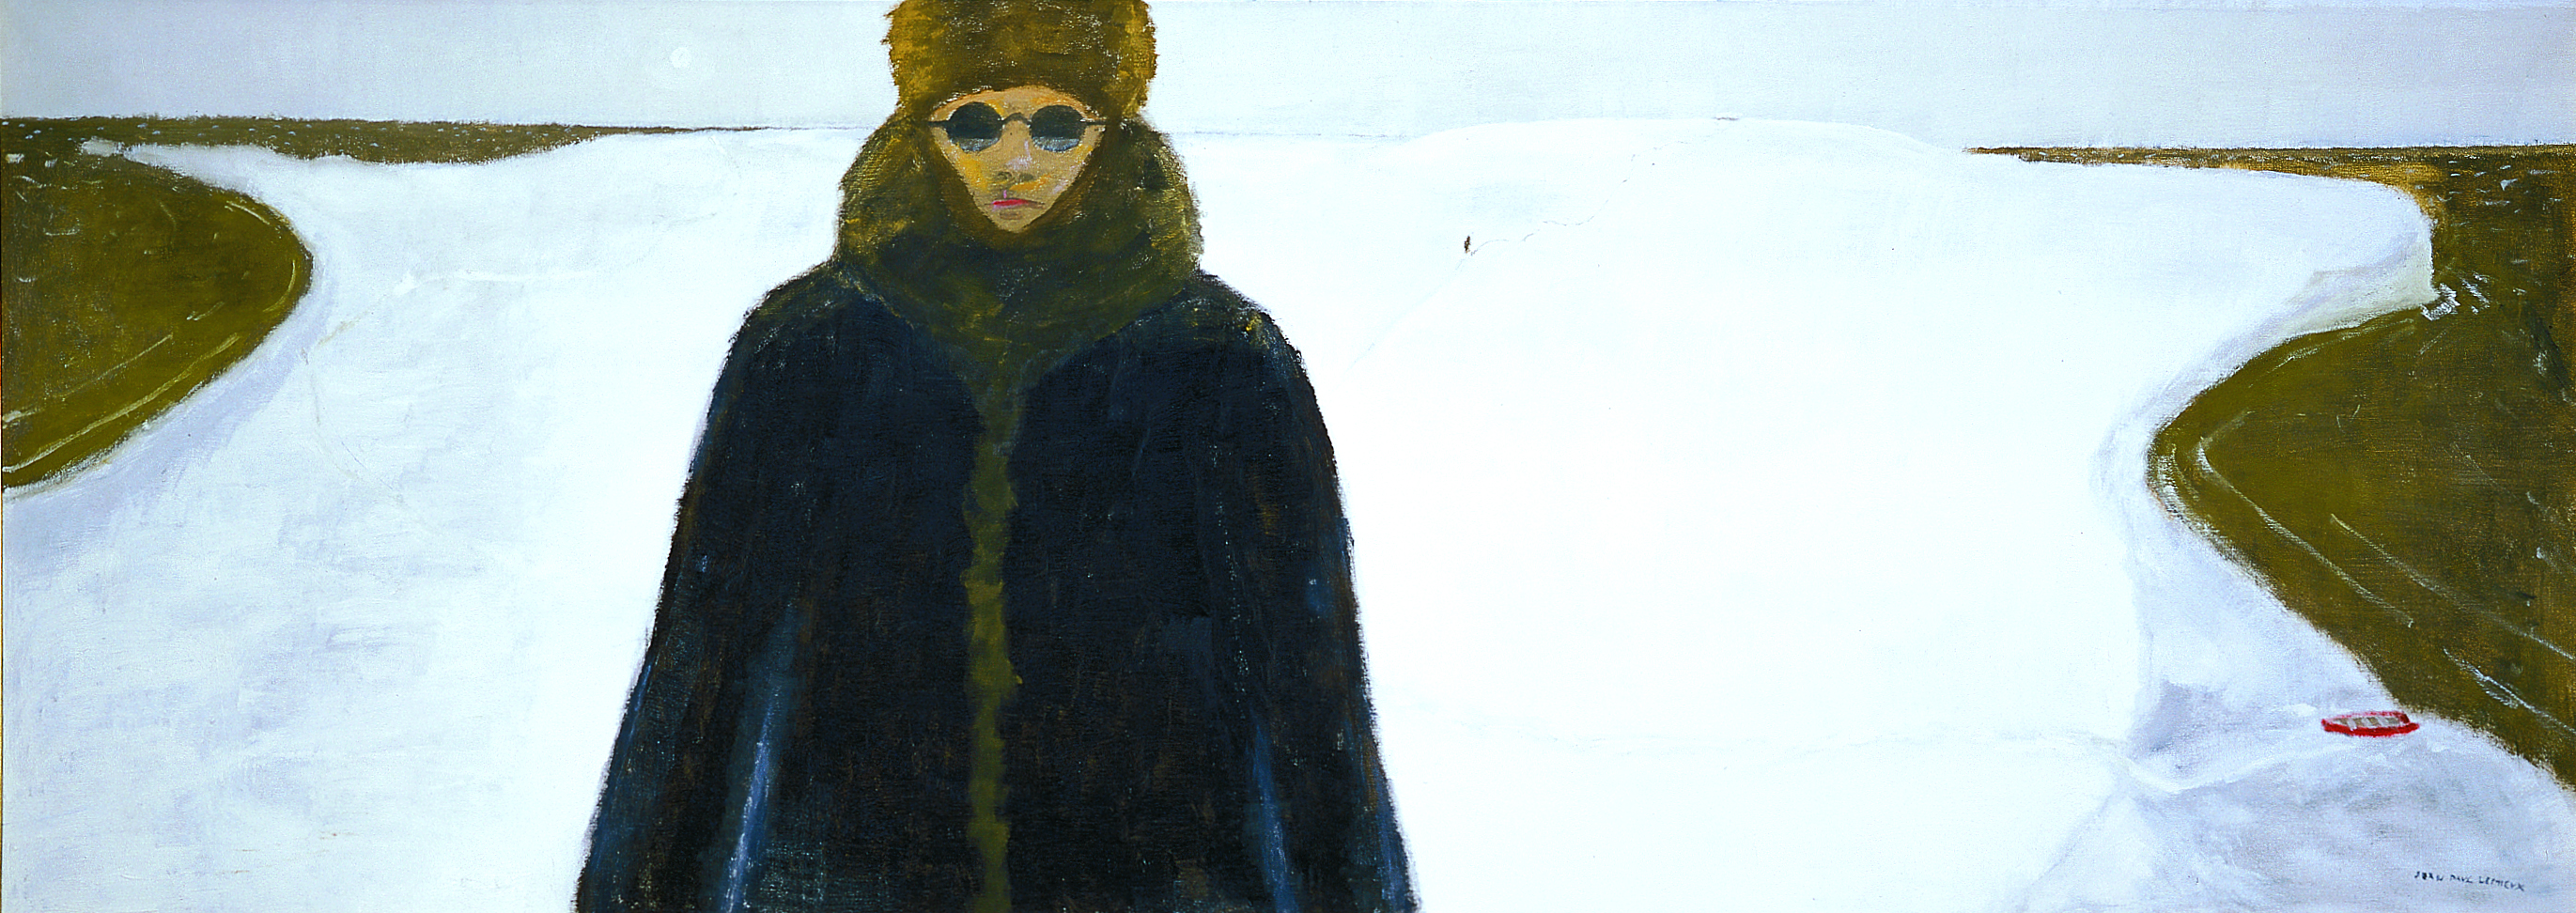 Jean Paul Lemieux, Le Découvreur, 1976, Oil on canvas, 74.7 x 206.0 cm, 1994.246, Gift of Christopher Ondaatje, Toronto, Ontario, 1994